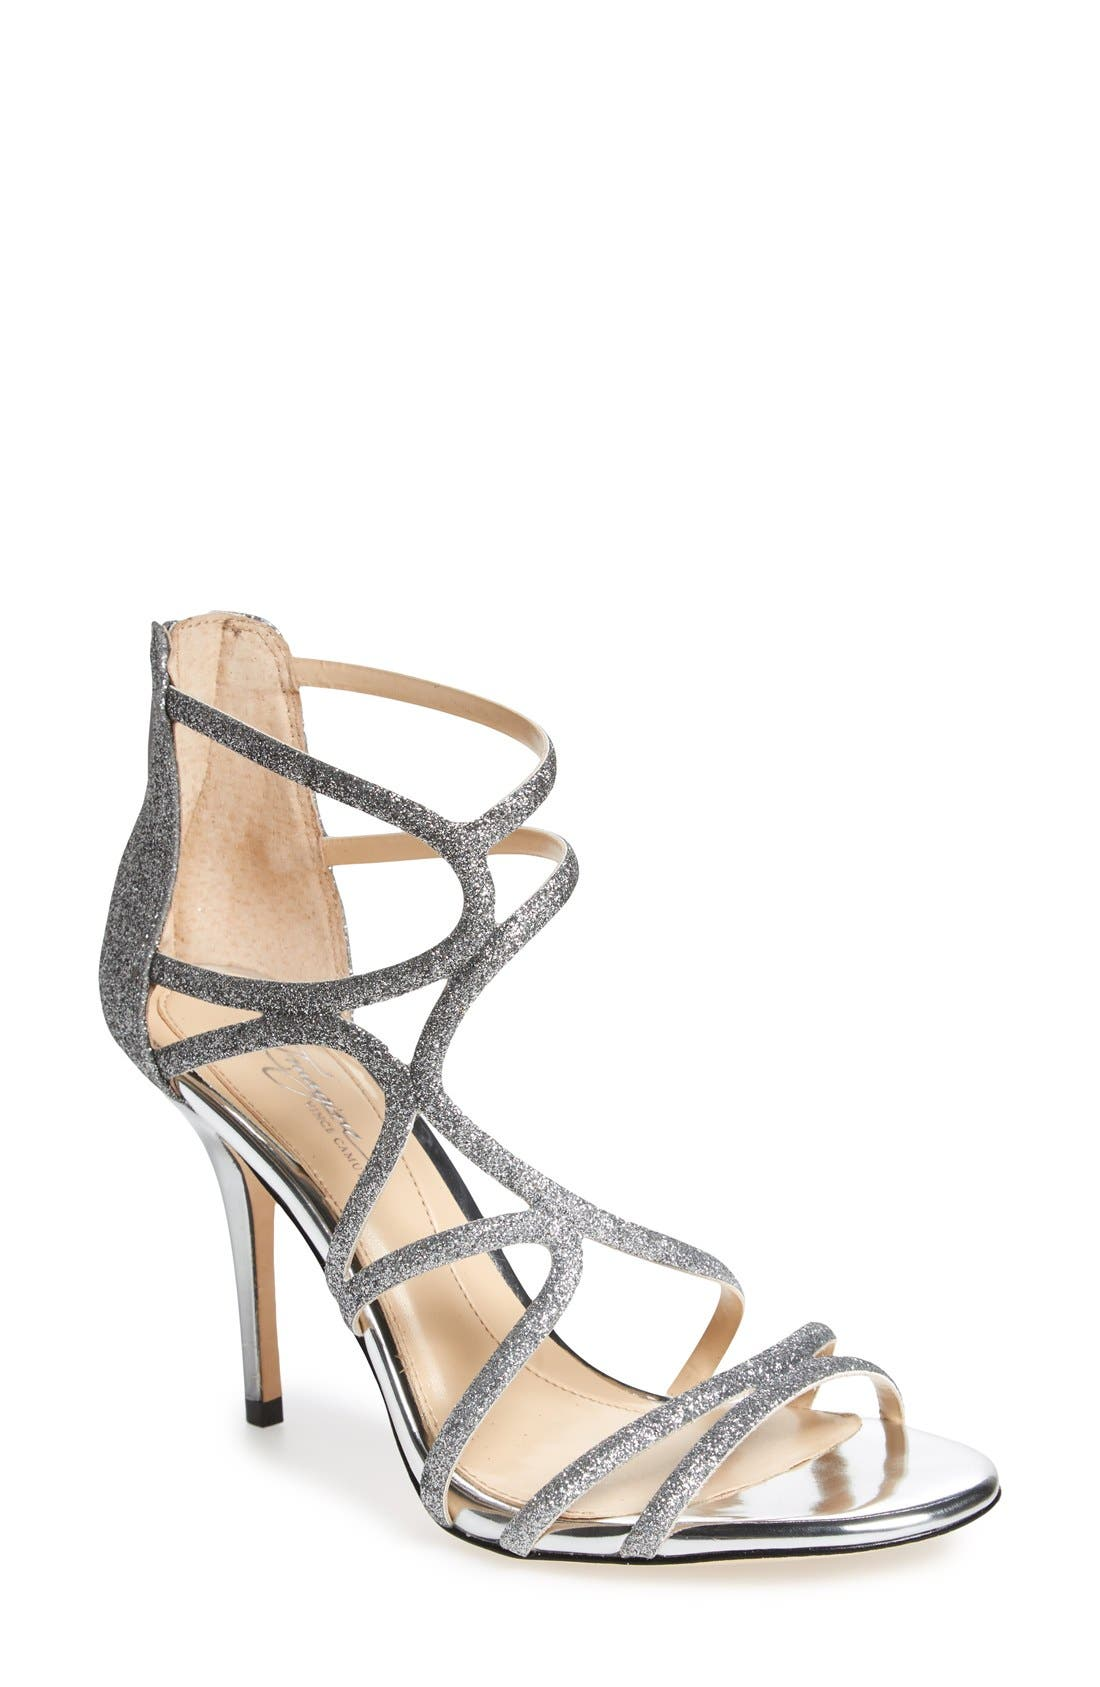 Main Image - Imagine by Vince Camuto 'Ranee' Dress Sandal (Women)